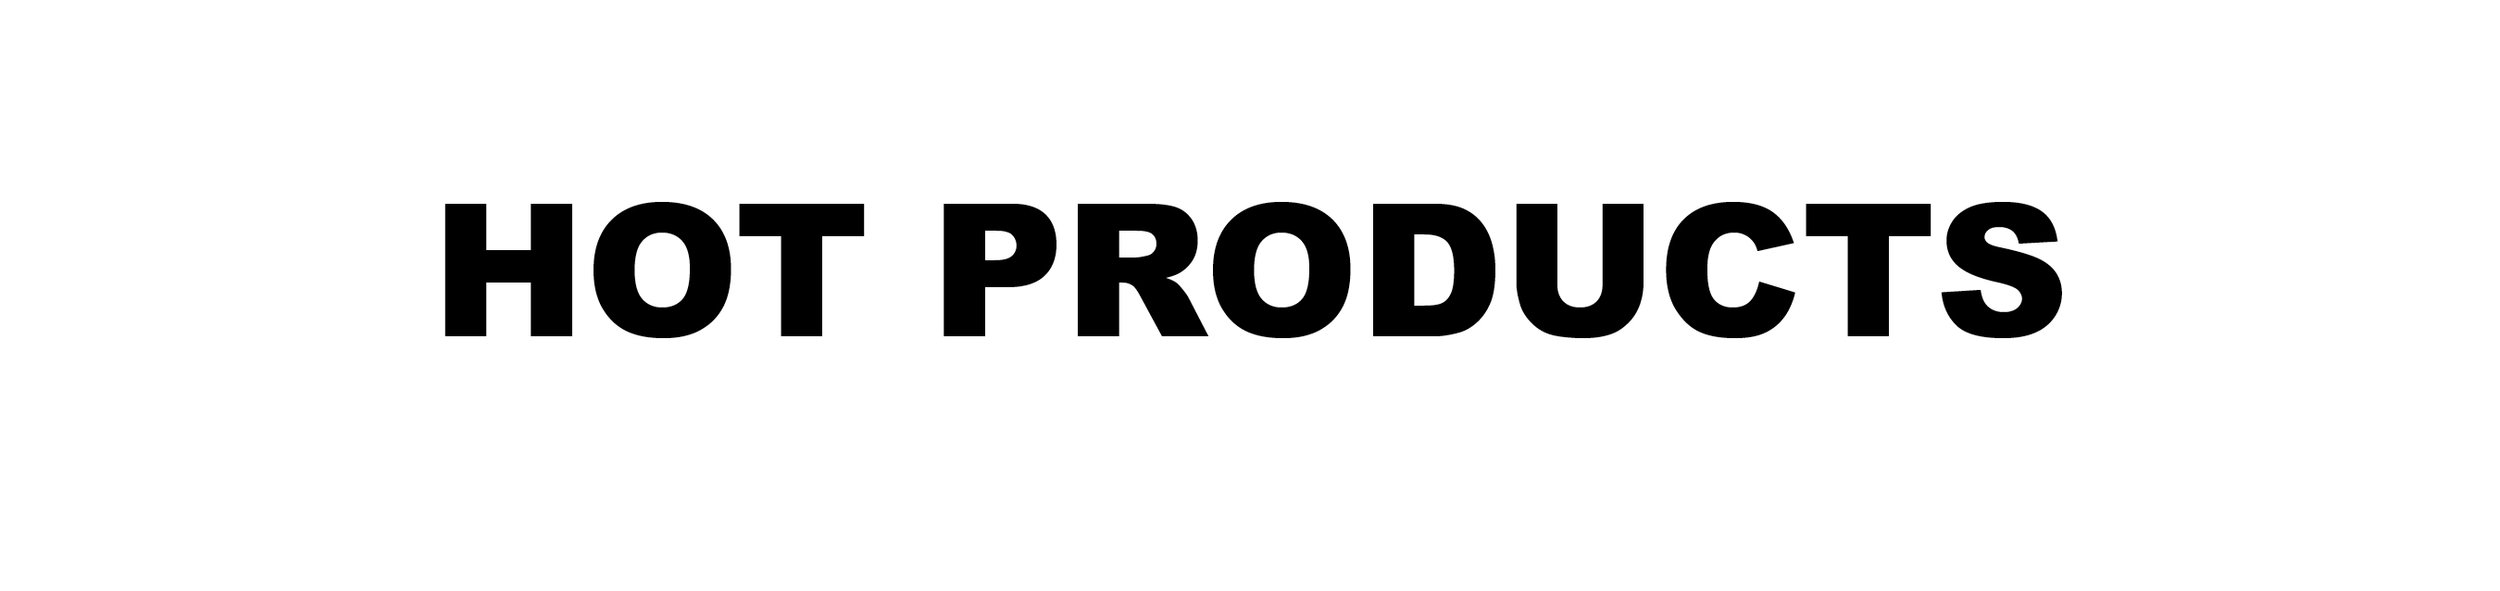 HOT PRODUCTS HEADER.jpg